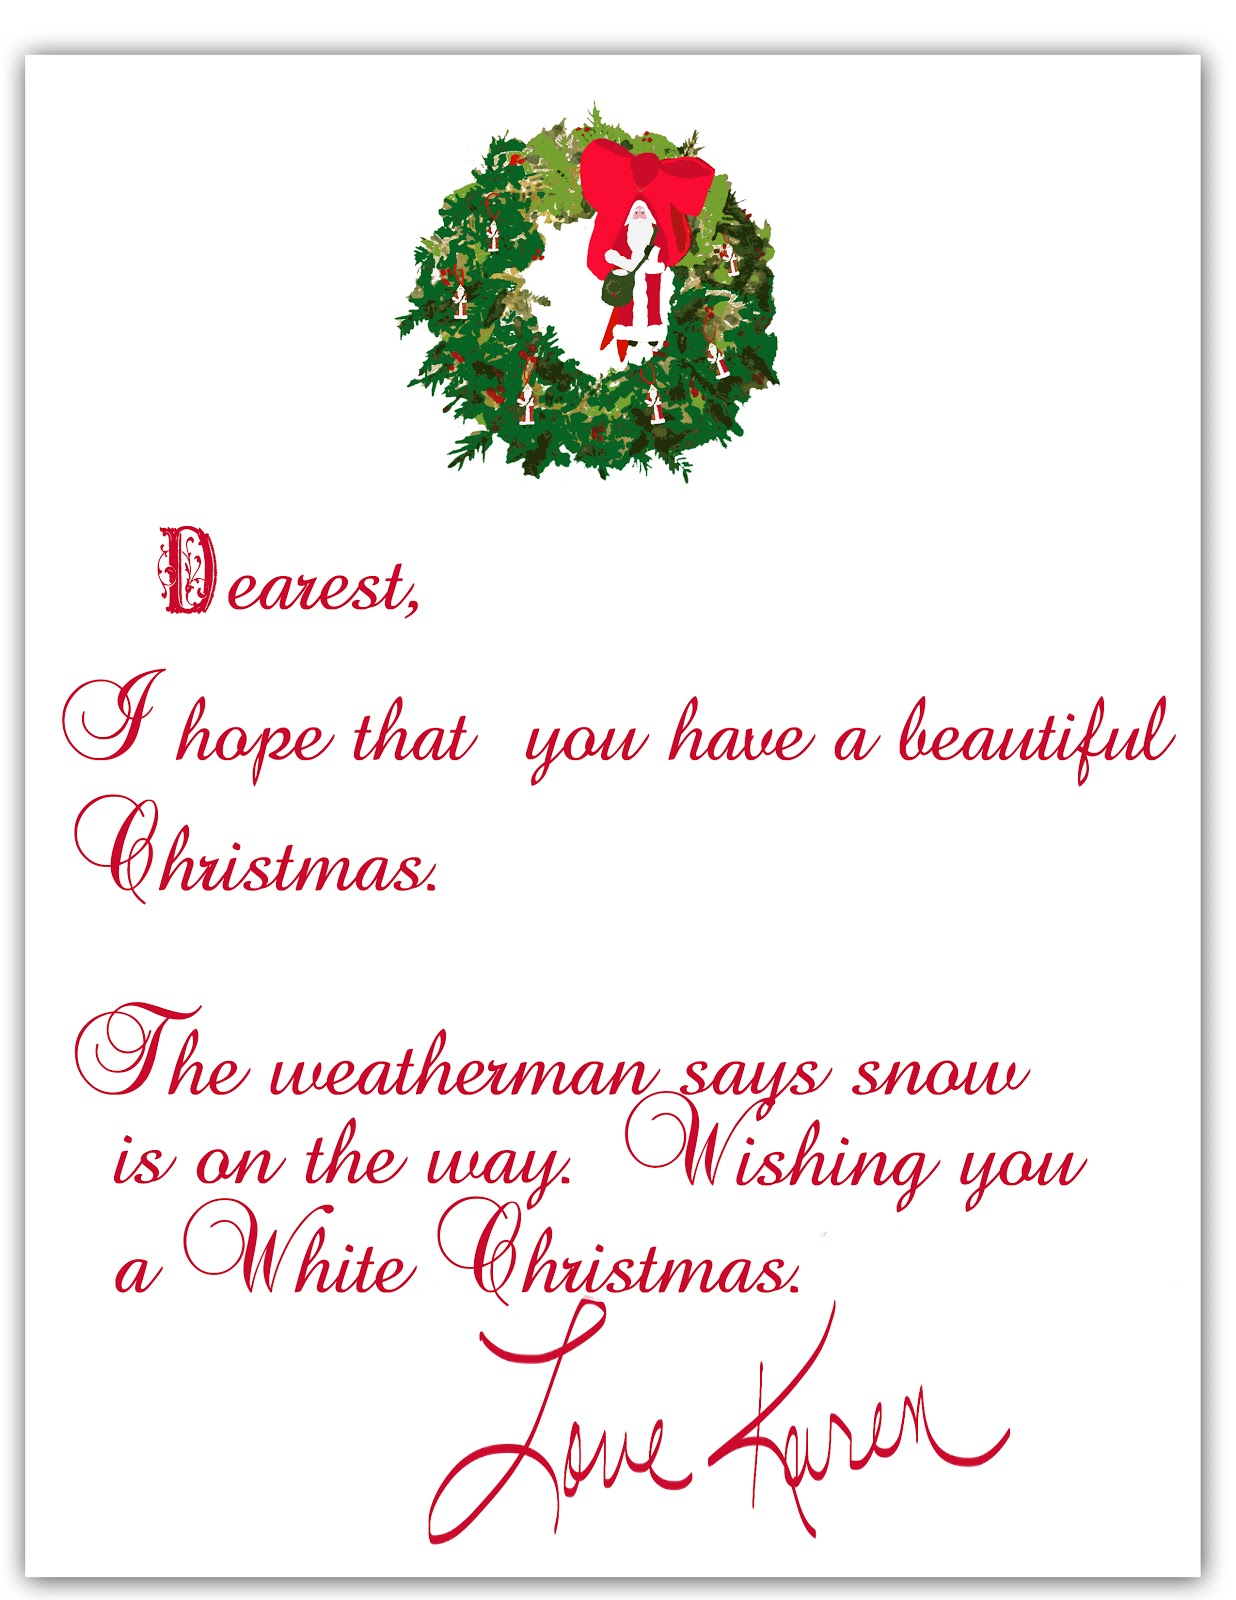 Christmas Card Letter Samples Pictures to Pin PinsDaddy – Christmas Card Letter Templates